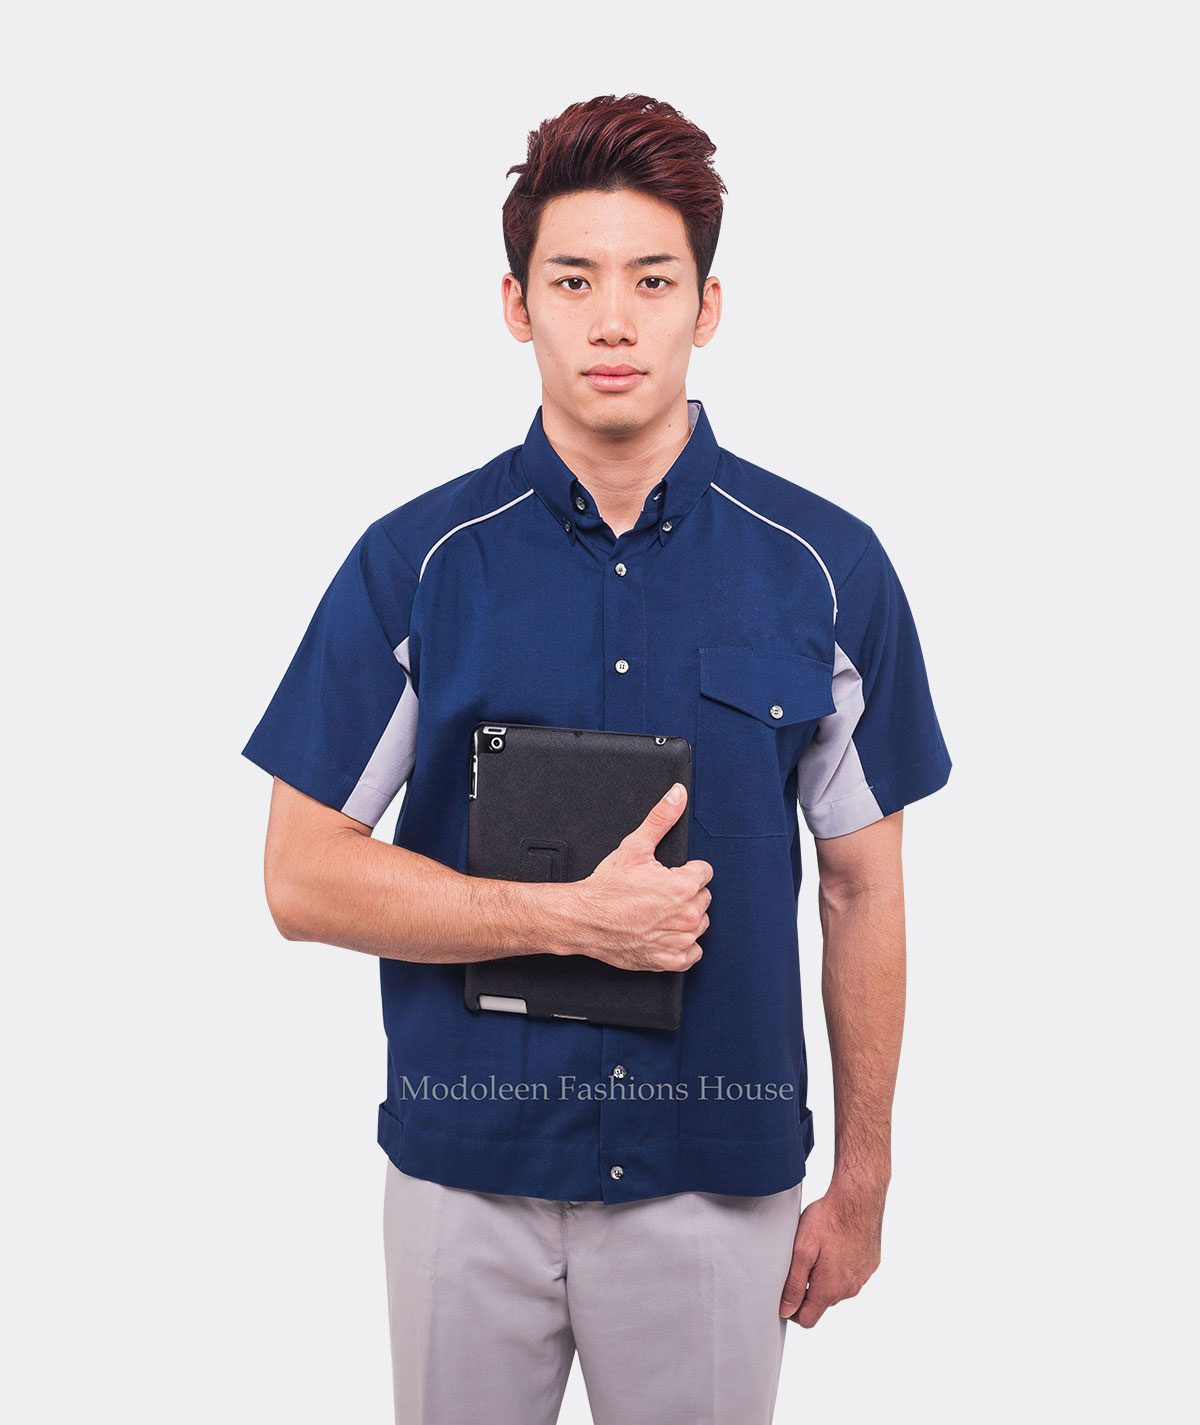 Automobile Sales Representative Customer Service Shirt uniform